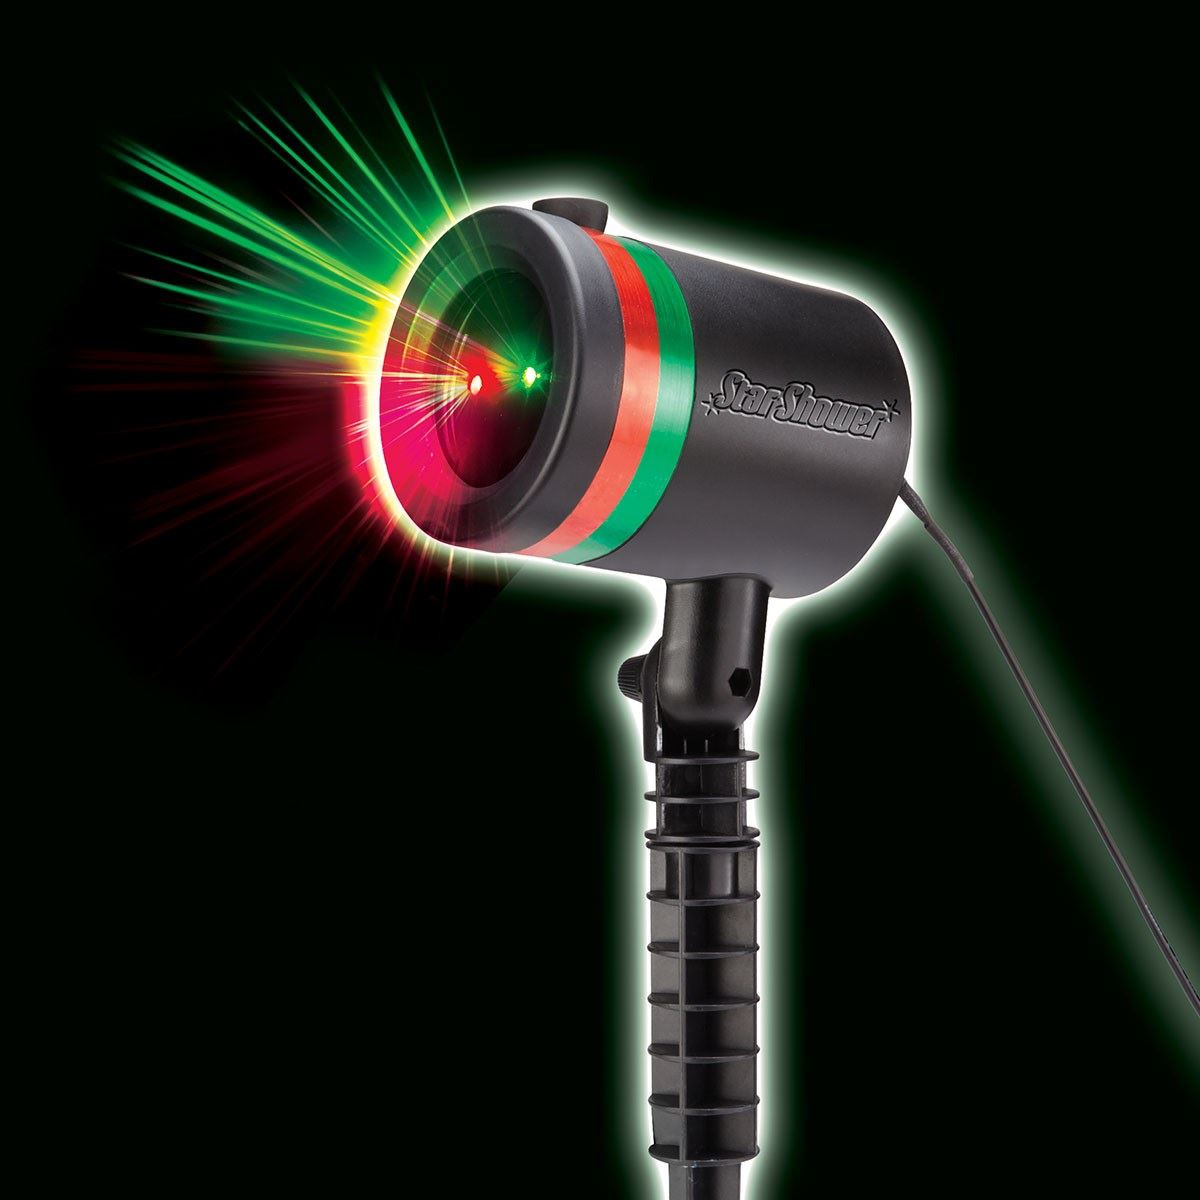 jml star shower laser projected light system 5m cable